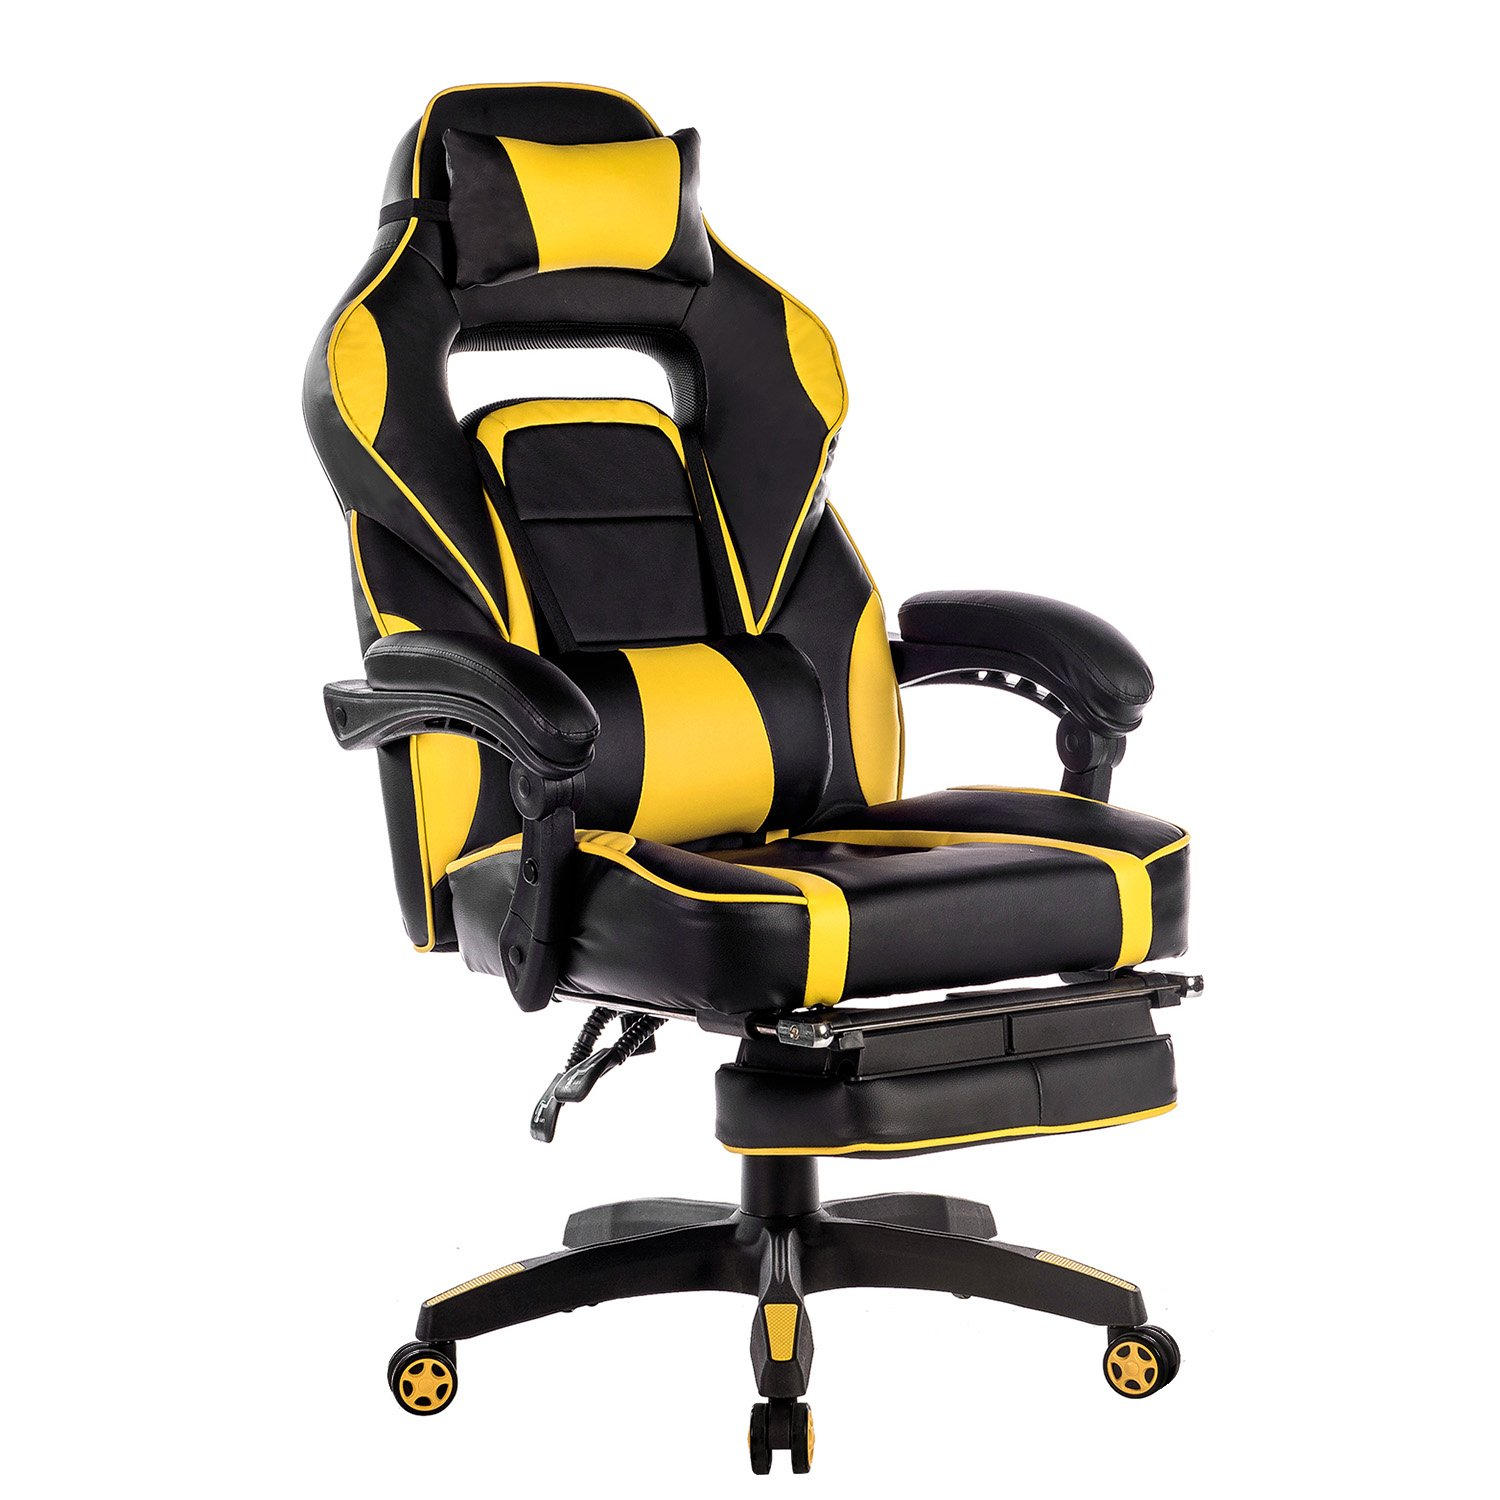 Merax High-Back Racing Home Office Chair, Ergonomic Gaming Chair with Footrest, PU Leather Swivel Computer Home Office Chair including Headrest and Lumbar Support (yellow)